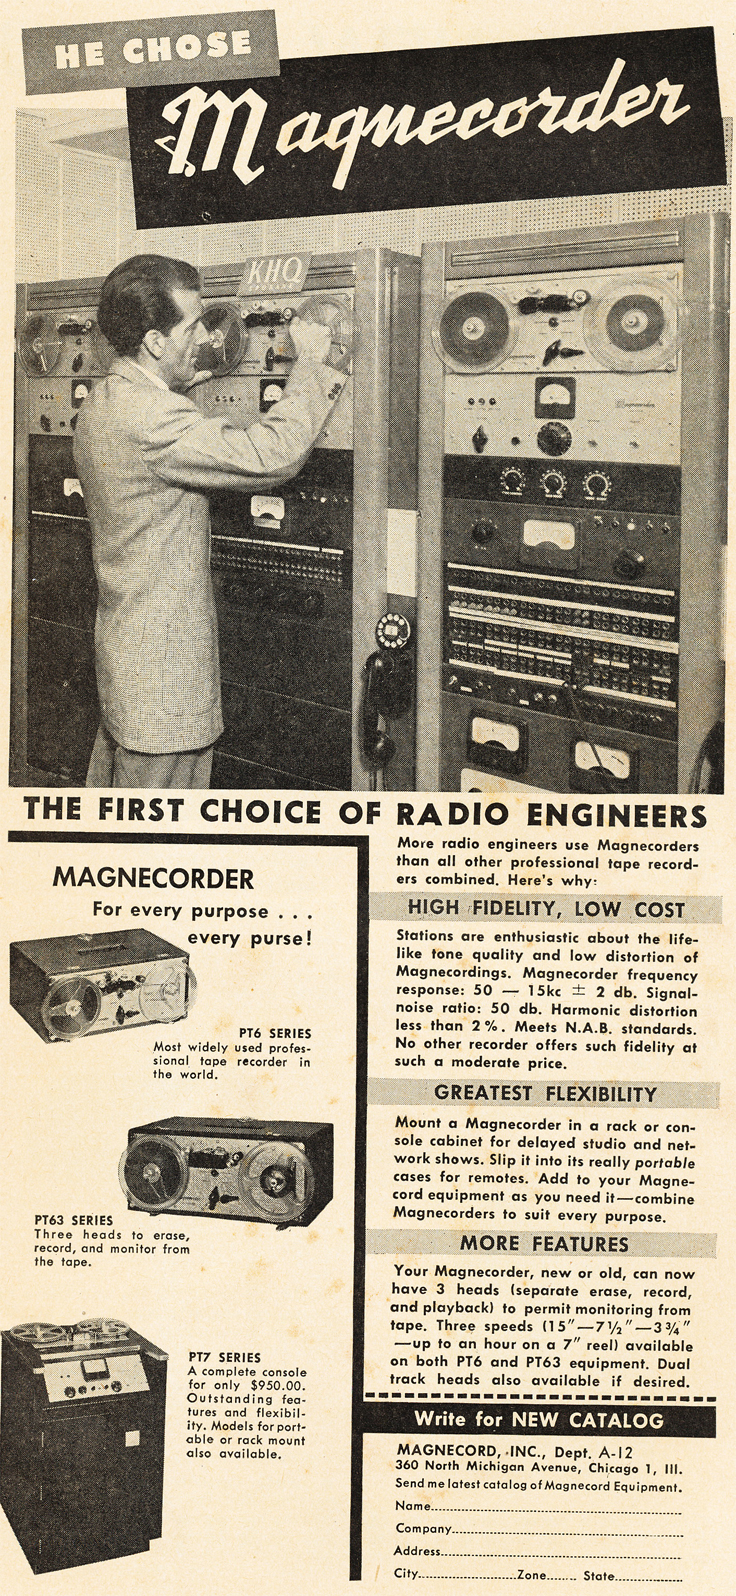 1950 ad for Magnecorder professional reel to reel tape recorders in Reel2ReelTexas.com's vintage recording collection